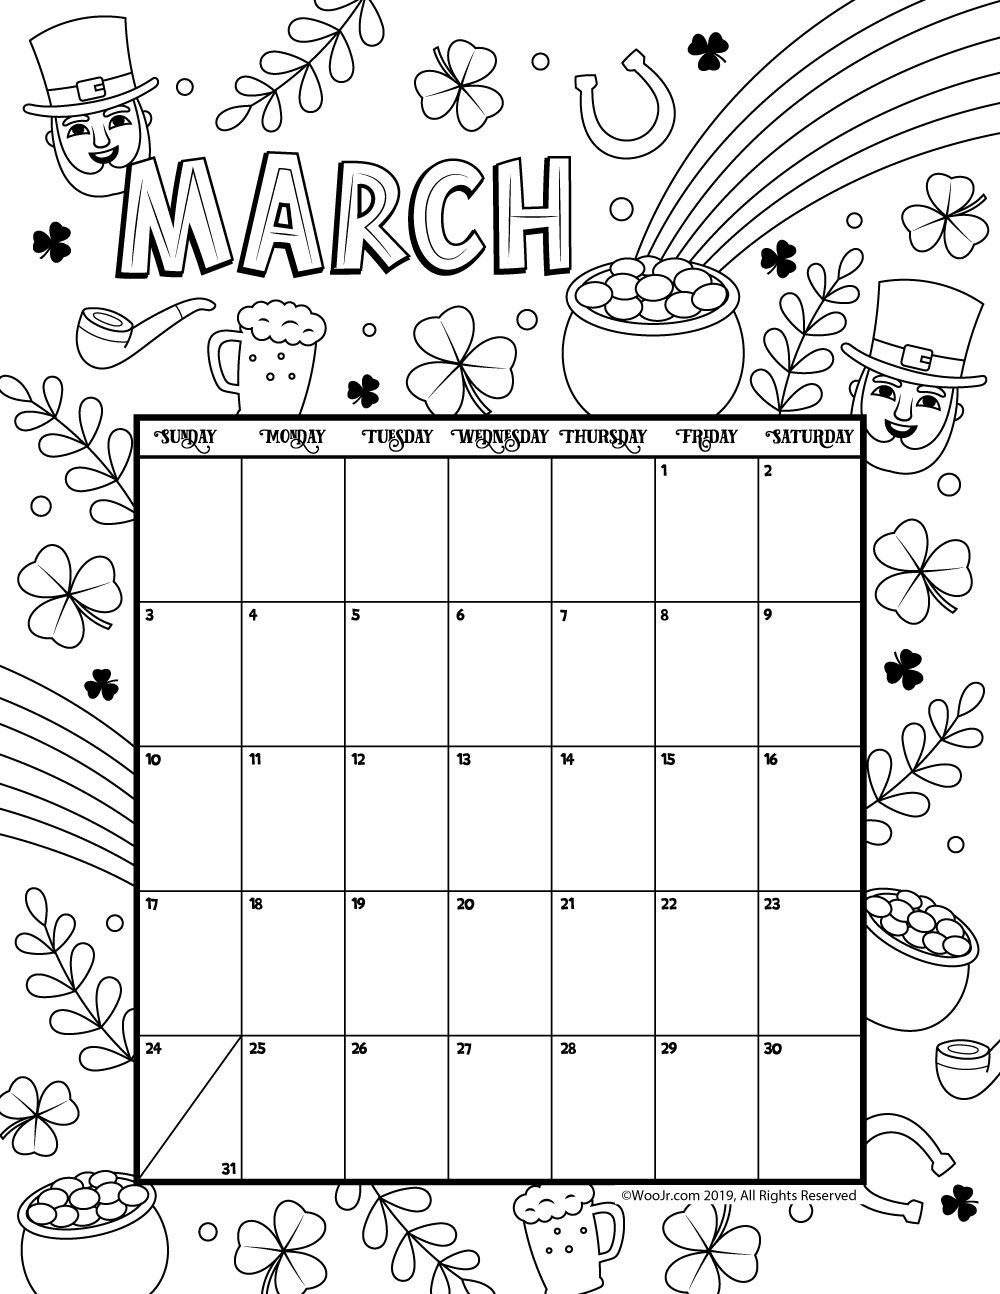 March 2019 Coloring Calendar   Daycare Funcare!!   March Calendar - Free Printable March Activities